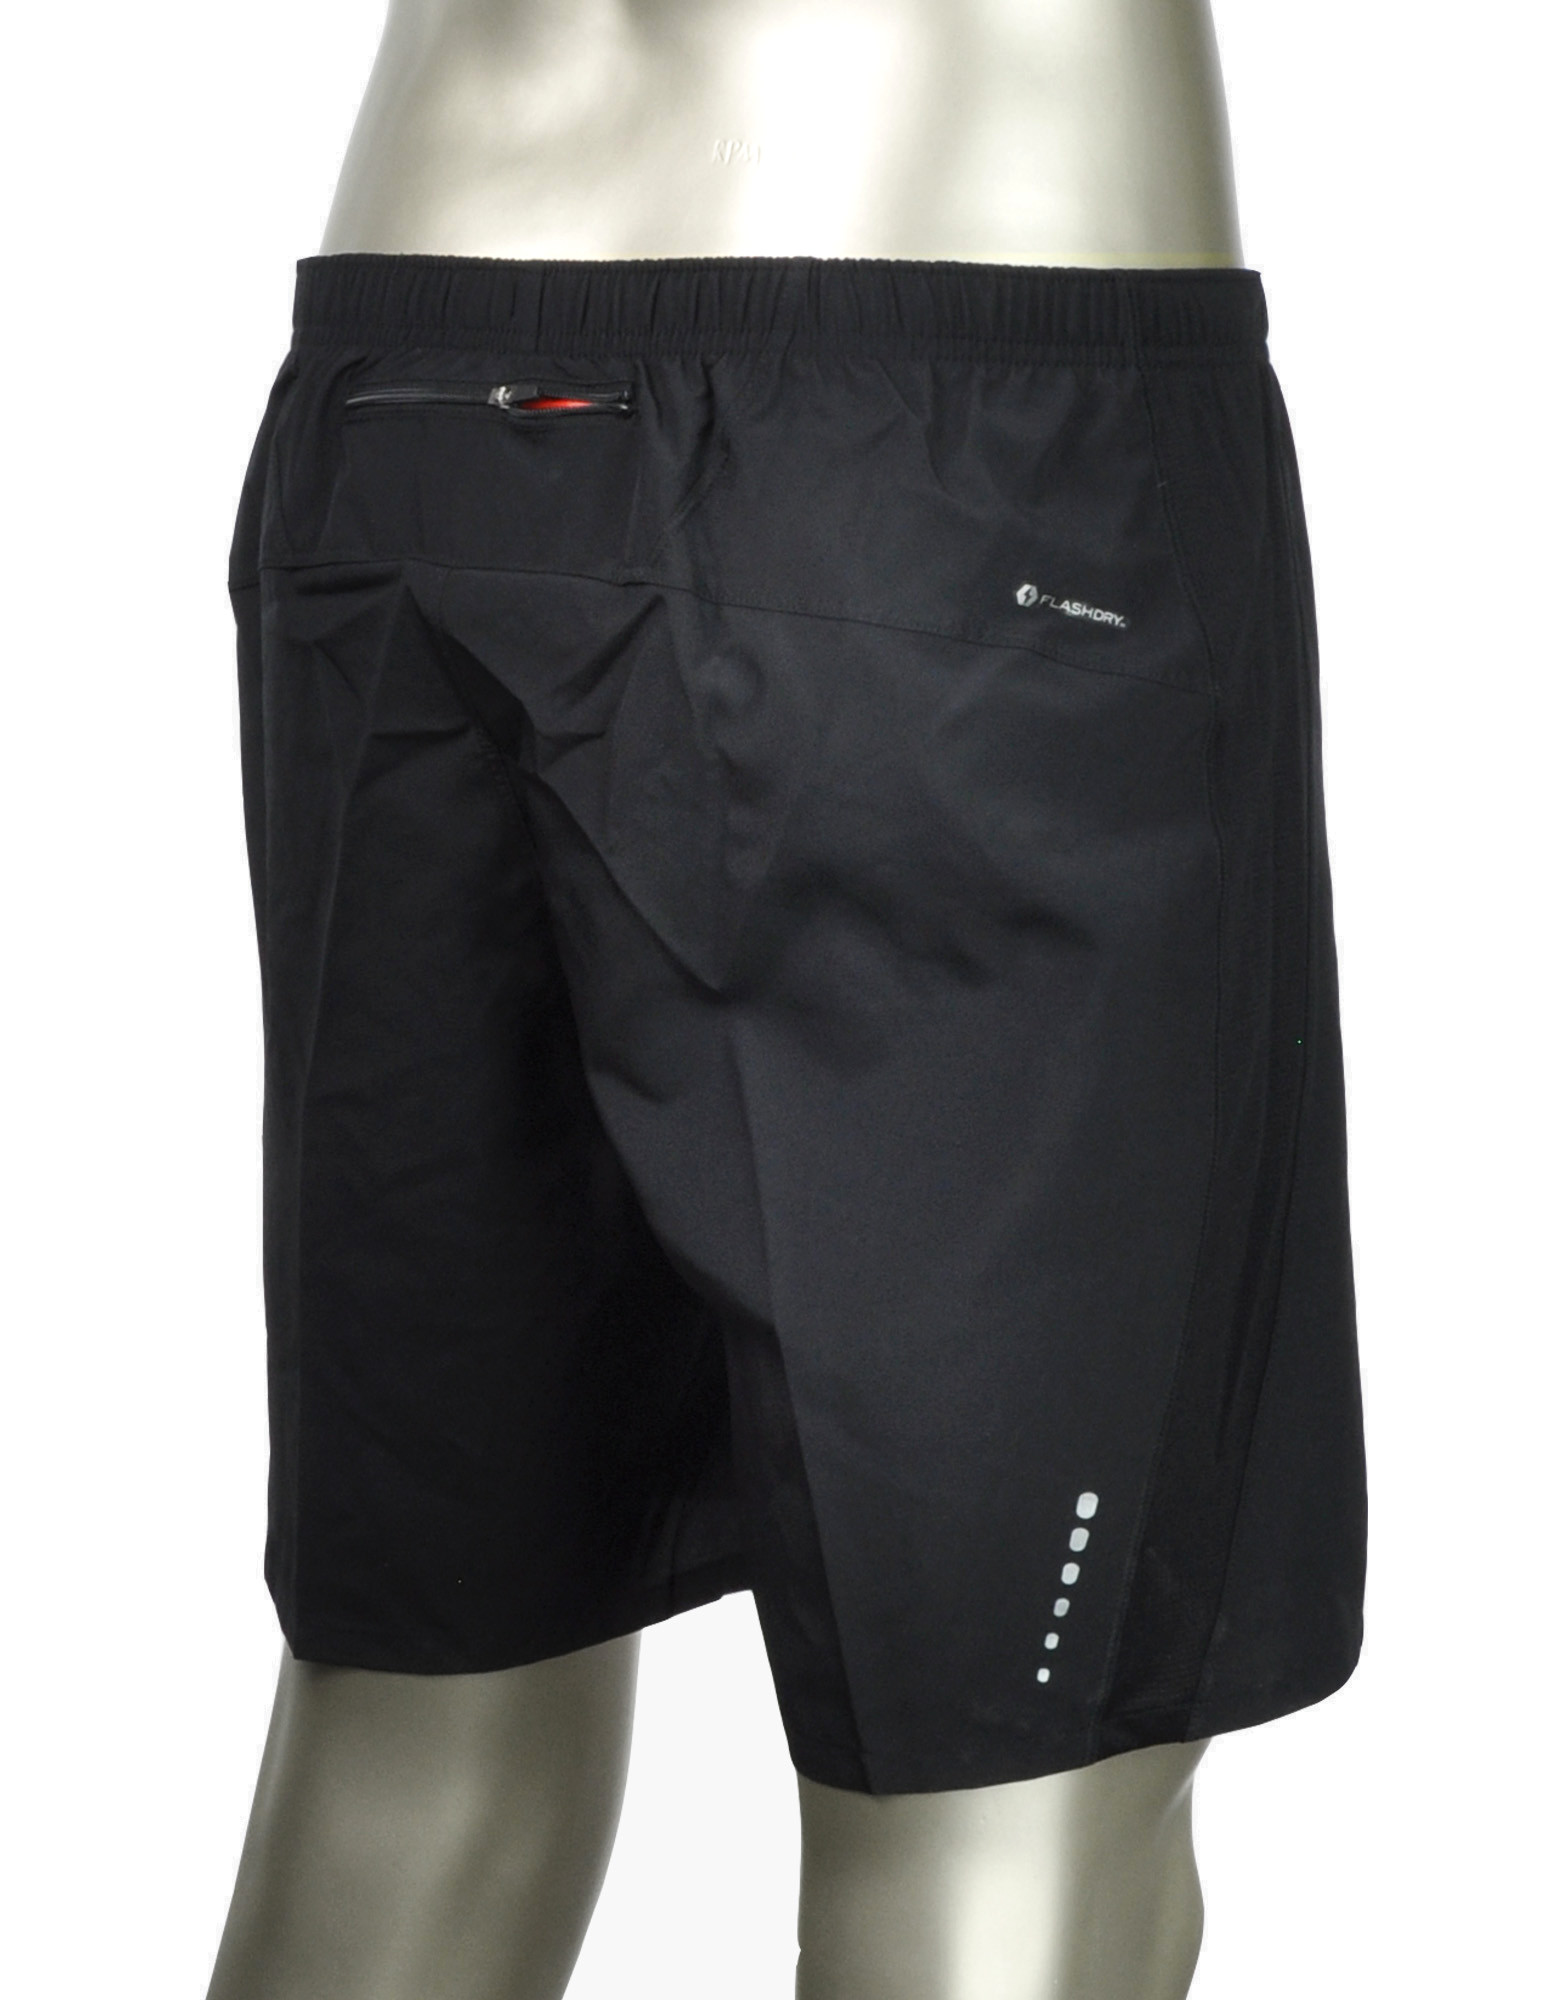 6fd6bf89f M GTD Running Shorts by THE NORTH FACE (colour: black)